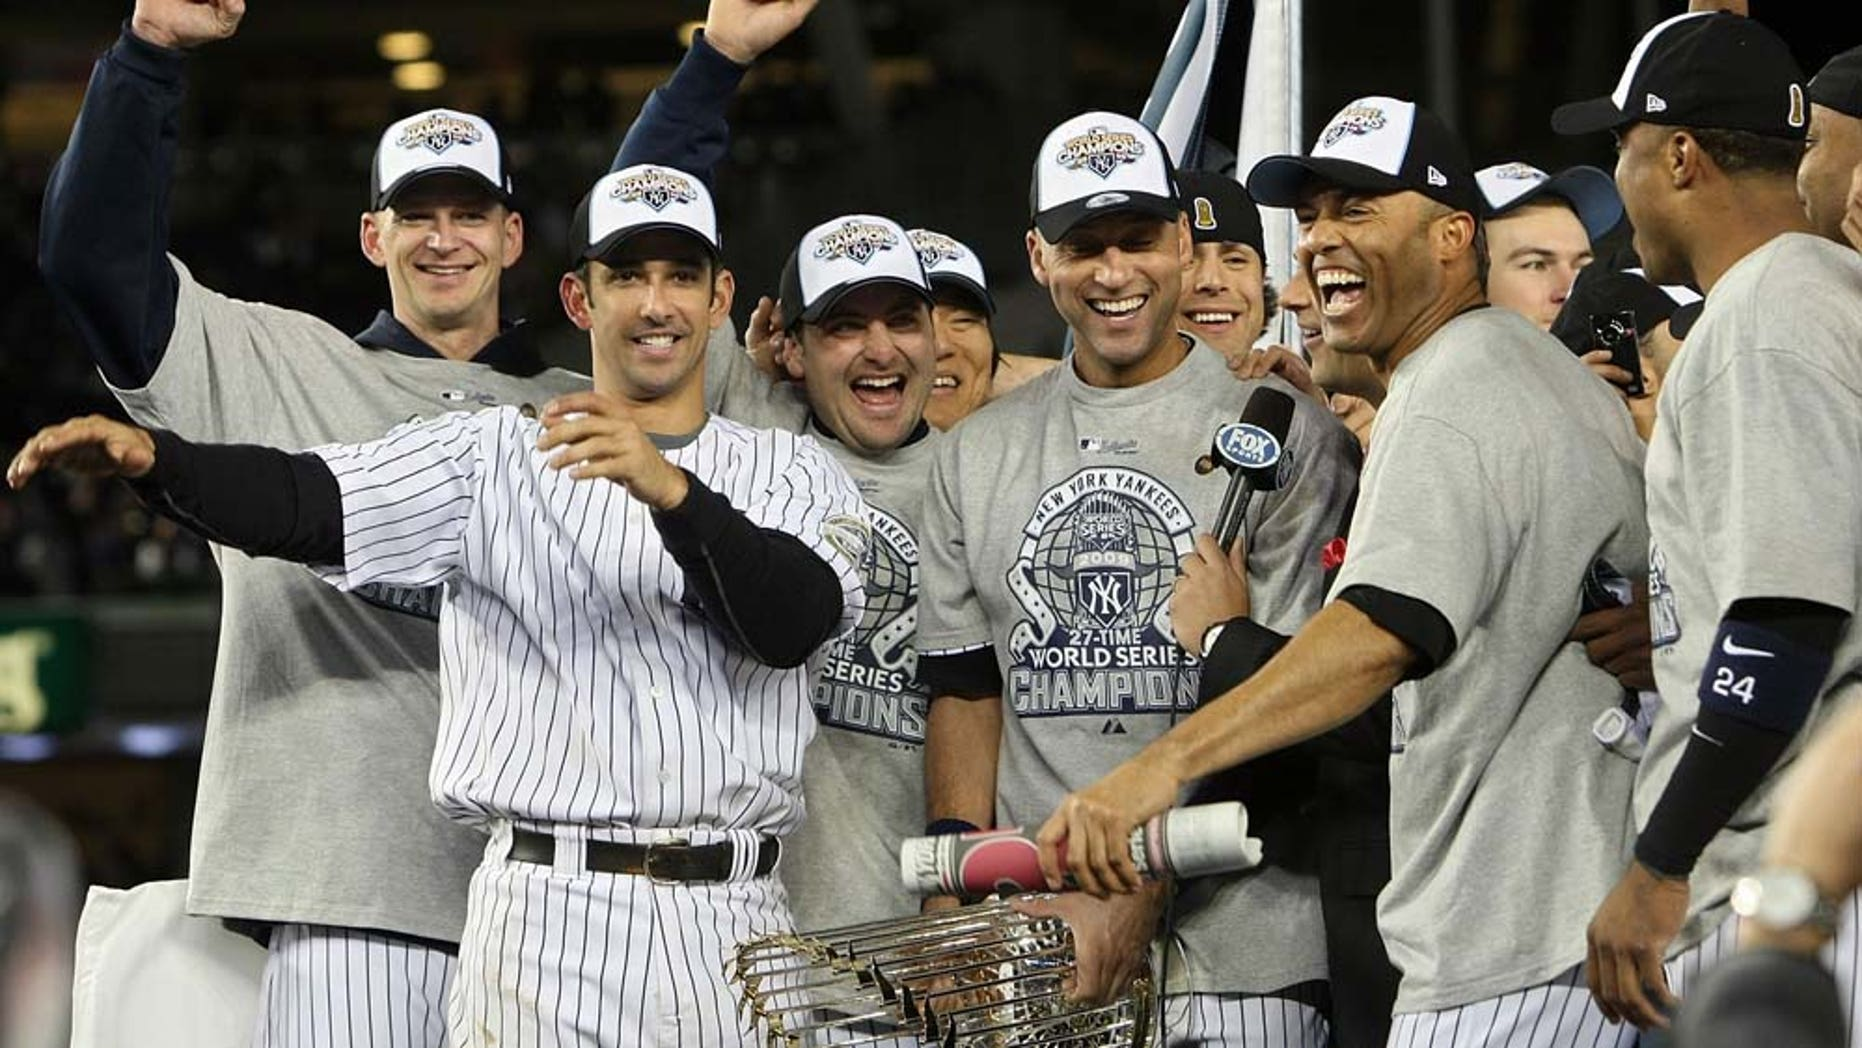 NEW YORK - NOVEMBER 04:  A.J. Burnett (L), Jorge Posada (2nd L), Derek Jeter #2 (C) and Mariano Rivera #42 of the New York Yankees celebrate with their teammates after their 7-3 win against the Philadelphia Phillies in Game Six of the 2009 MLB World Series at Yankee Stadium on November 4, 2009 in the Bronx borough of New York City.  (Photo by Nick Laham/Getty Images)